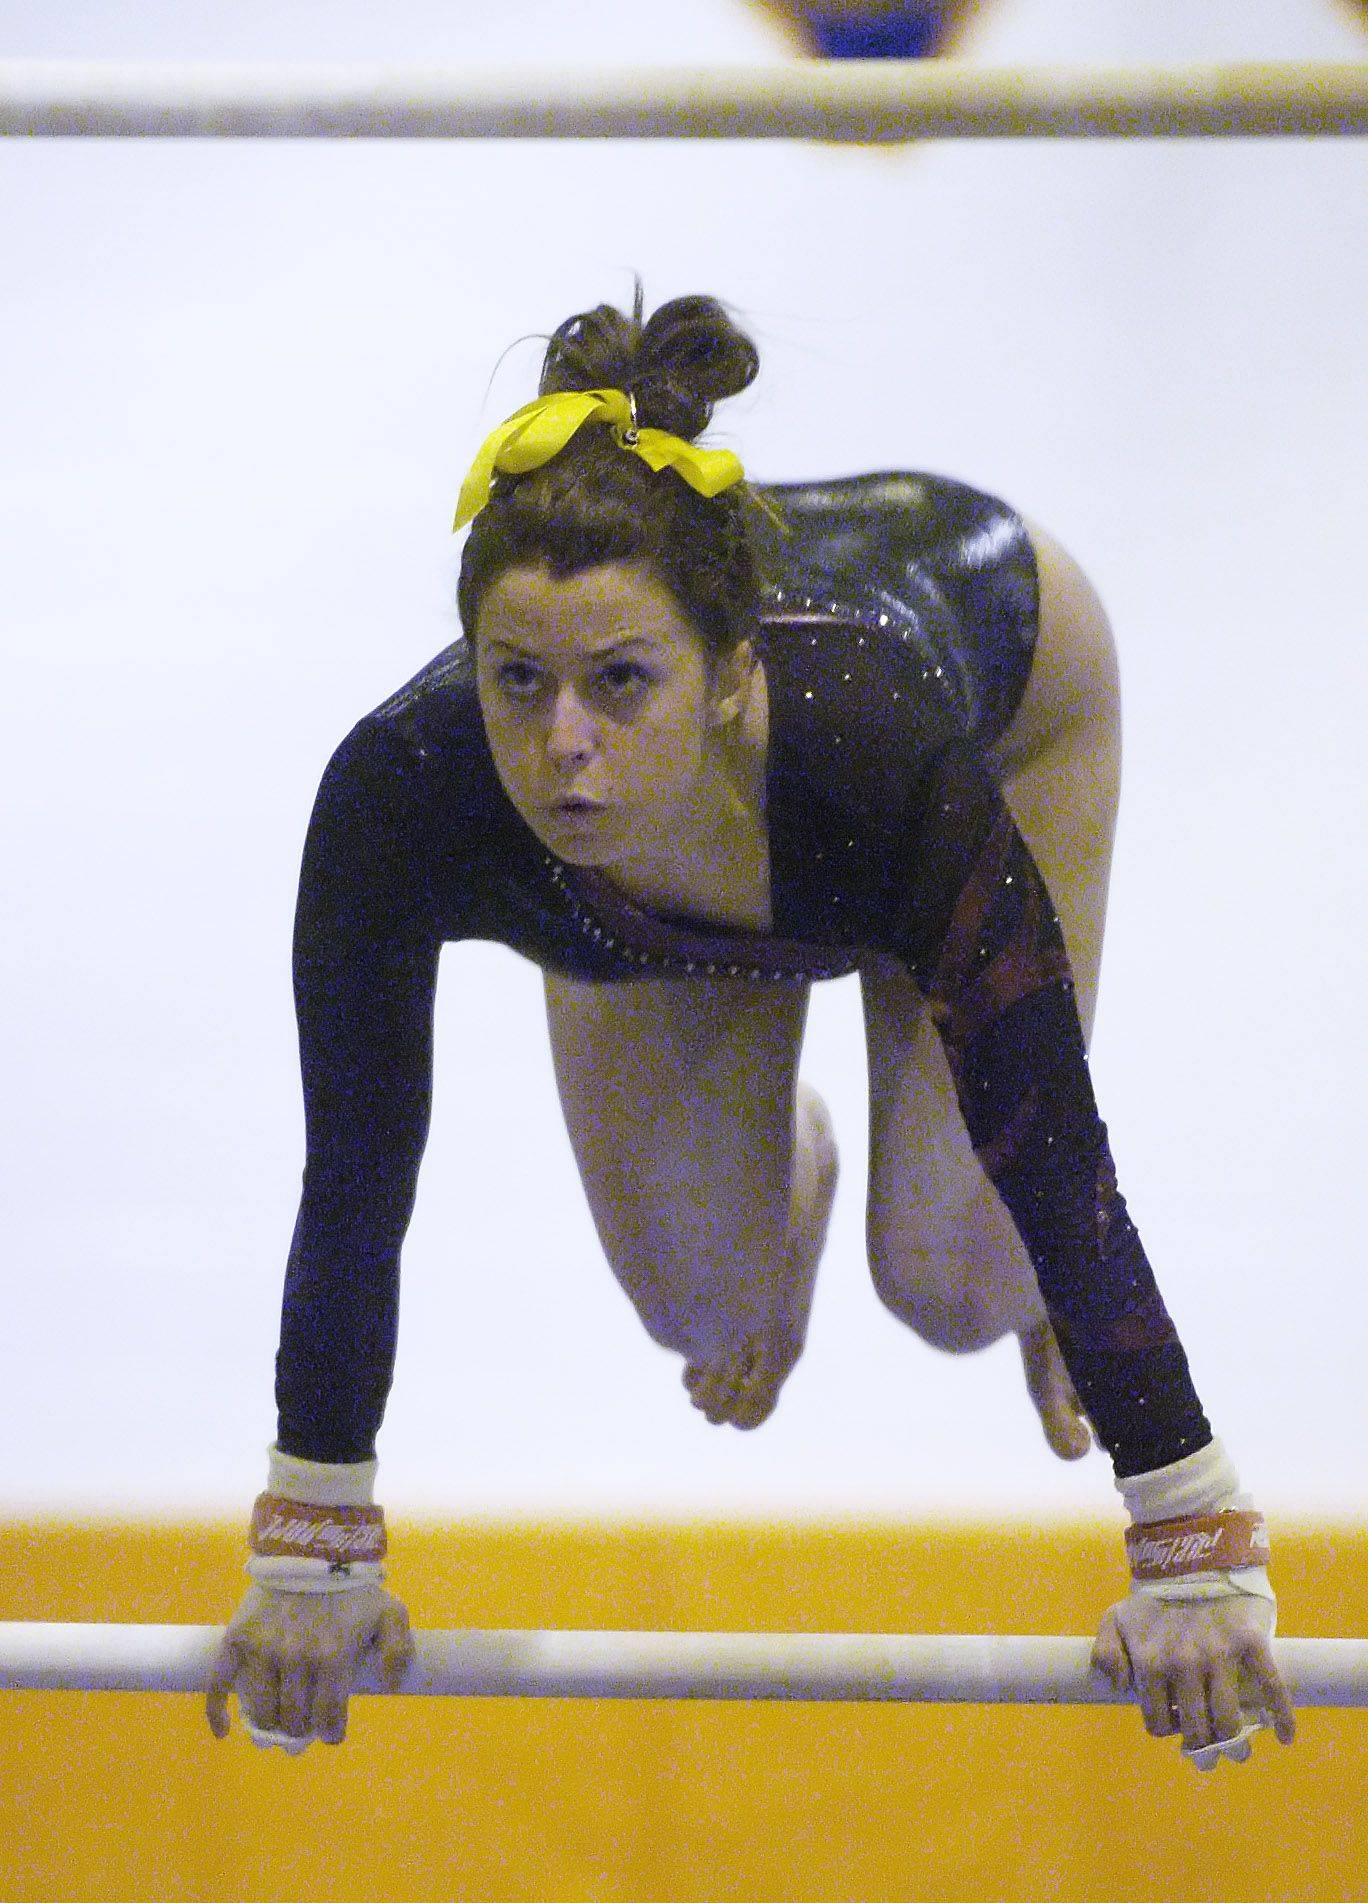 Schaumburg's Caitlin Barrett competes on the uneven parallel bars during Wednesday's gymnastics meet at Buffalo Grove.